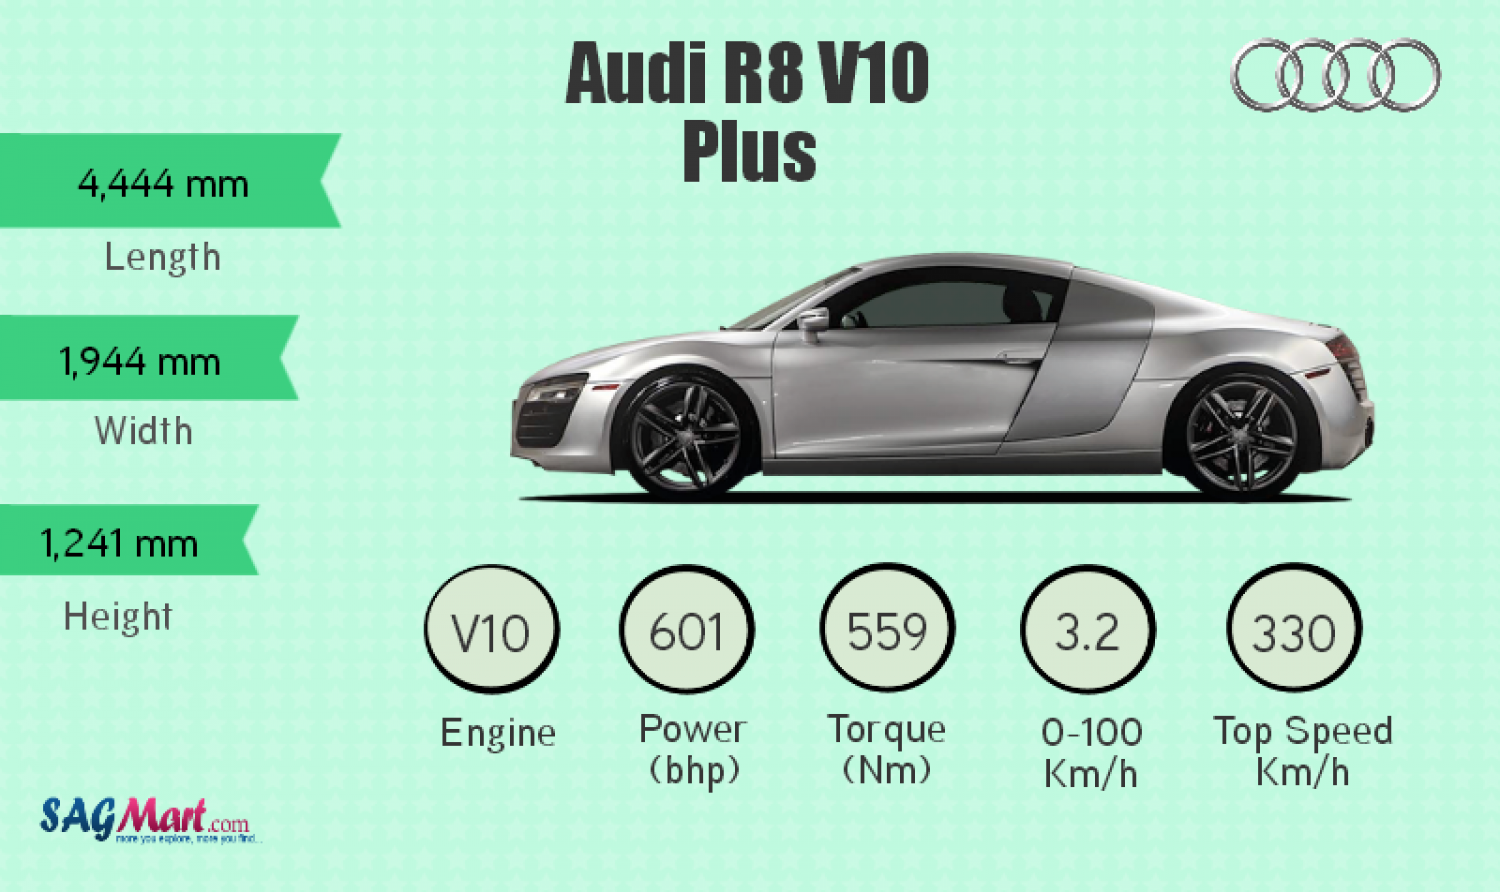 Info graphic Audi R8 Infographic